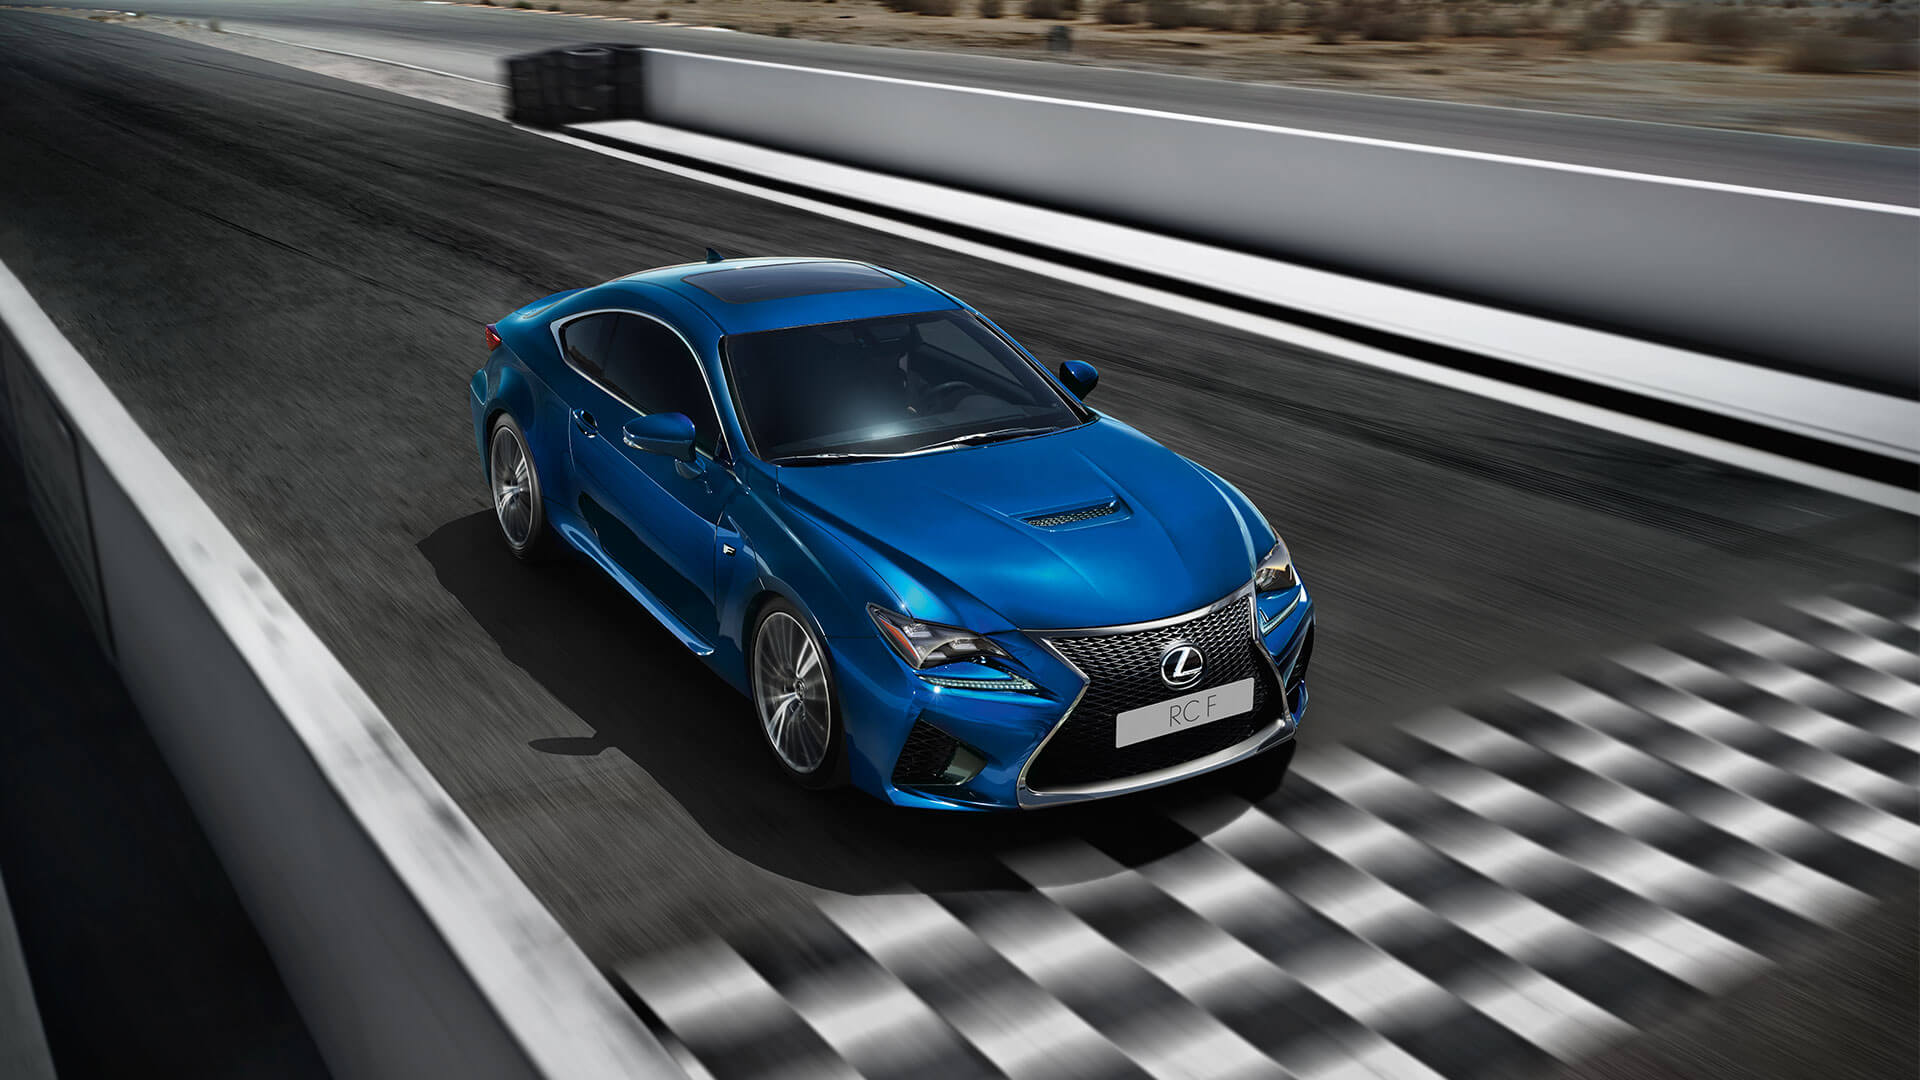 lexus f models section03 08